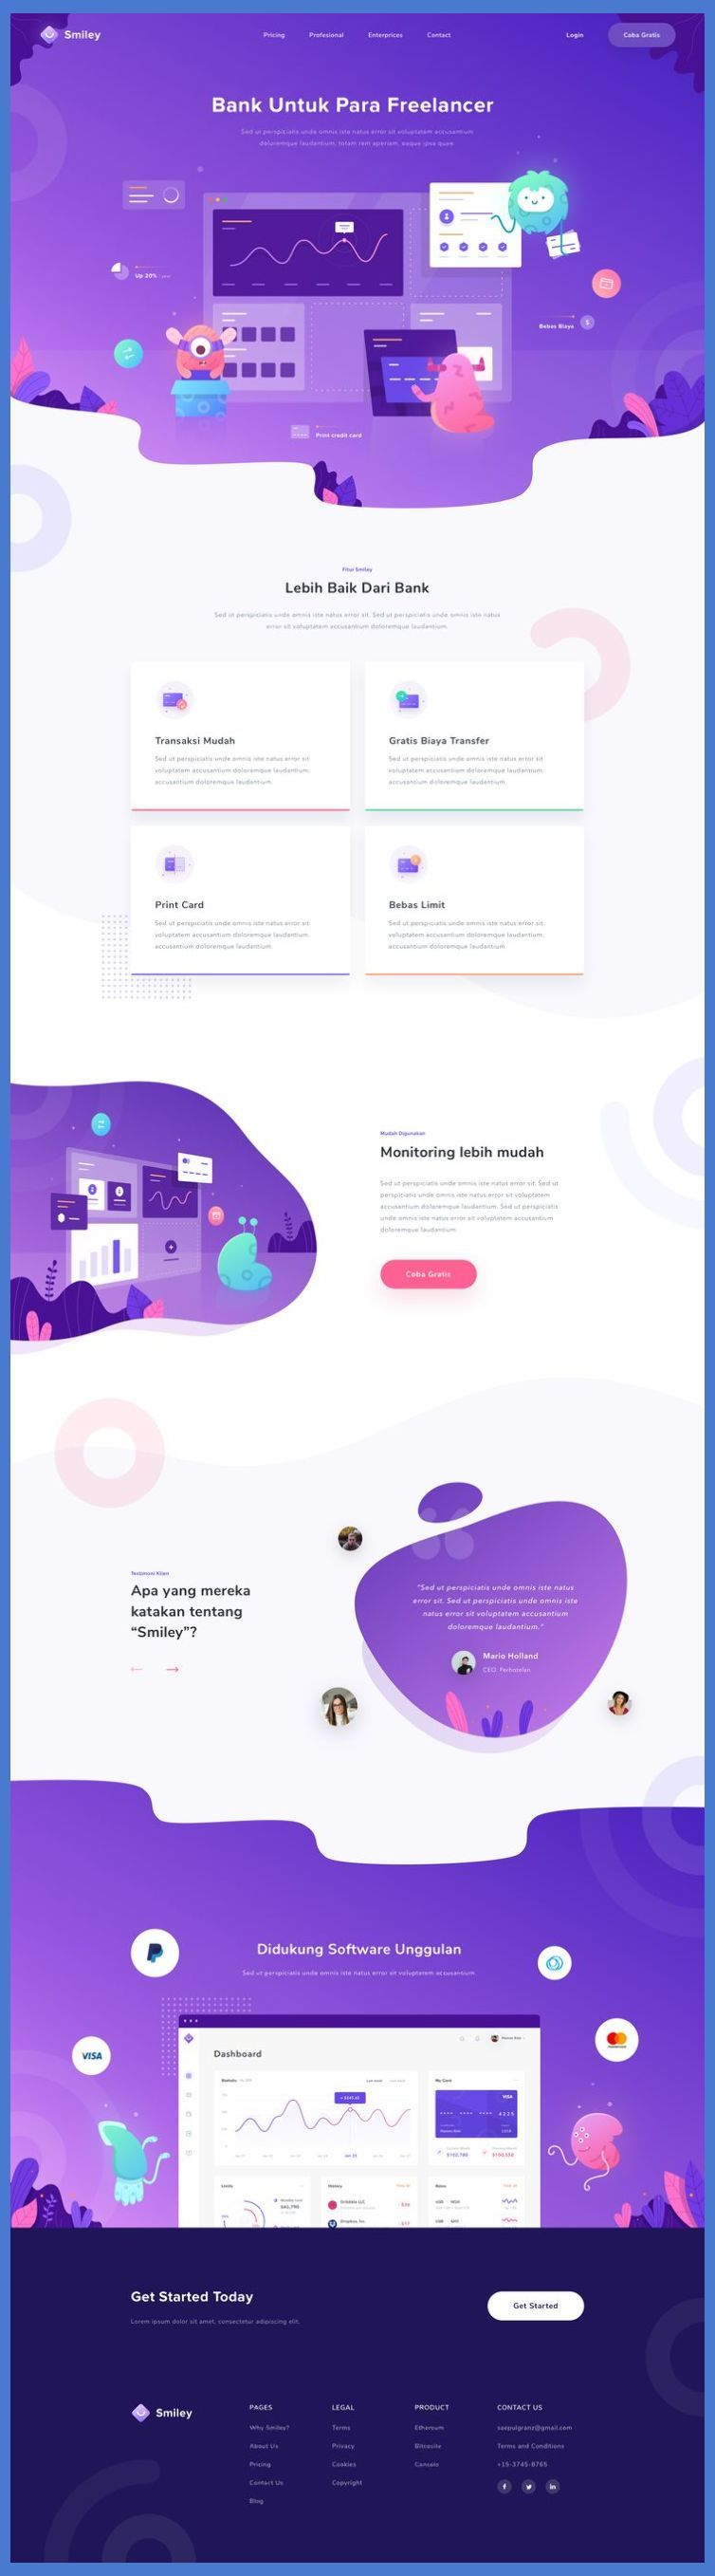 Landing Page Design Music Financial Landing Page Landing Page Design Landing Page Desi Web Design Tips Web App Design Web Layout Design